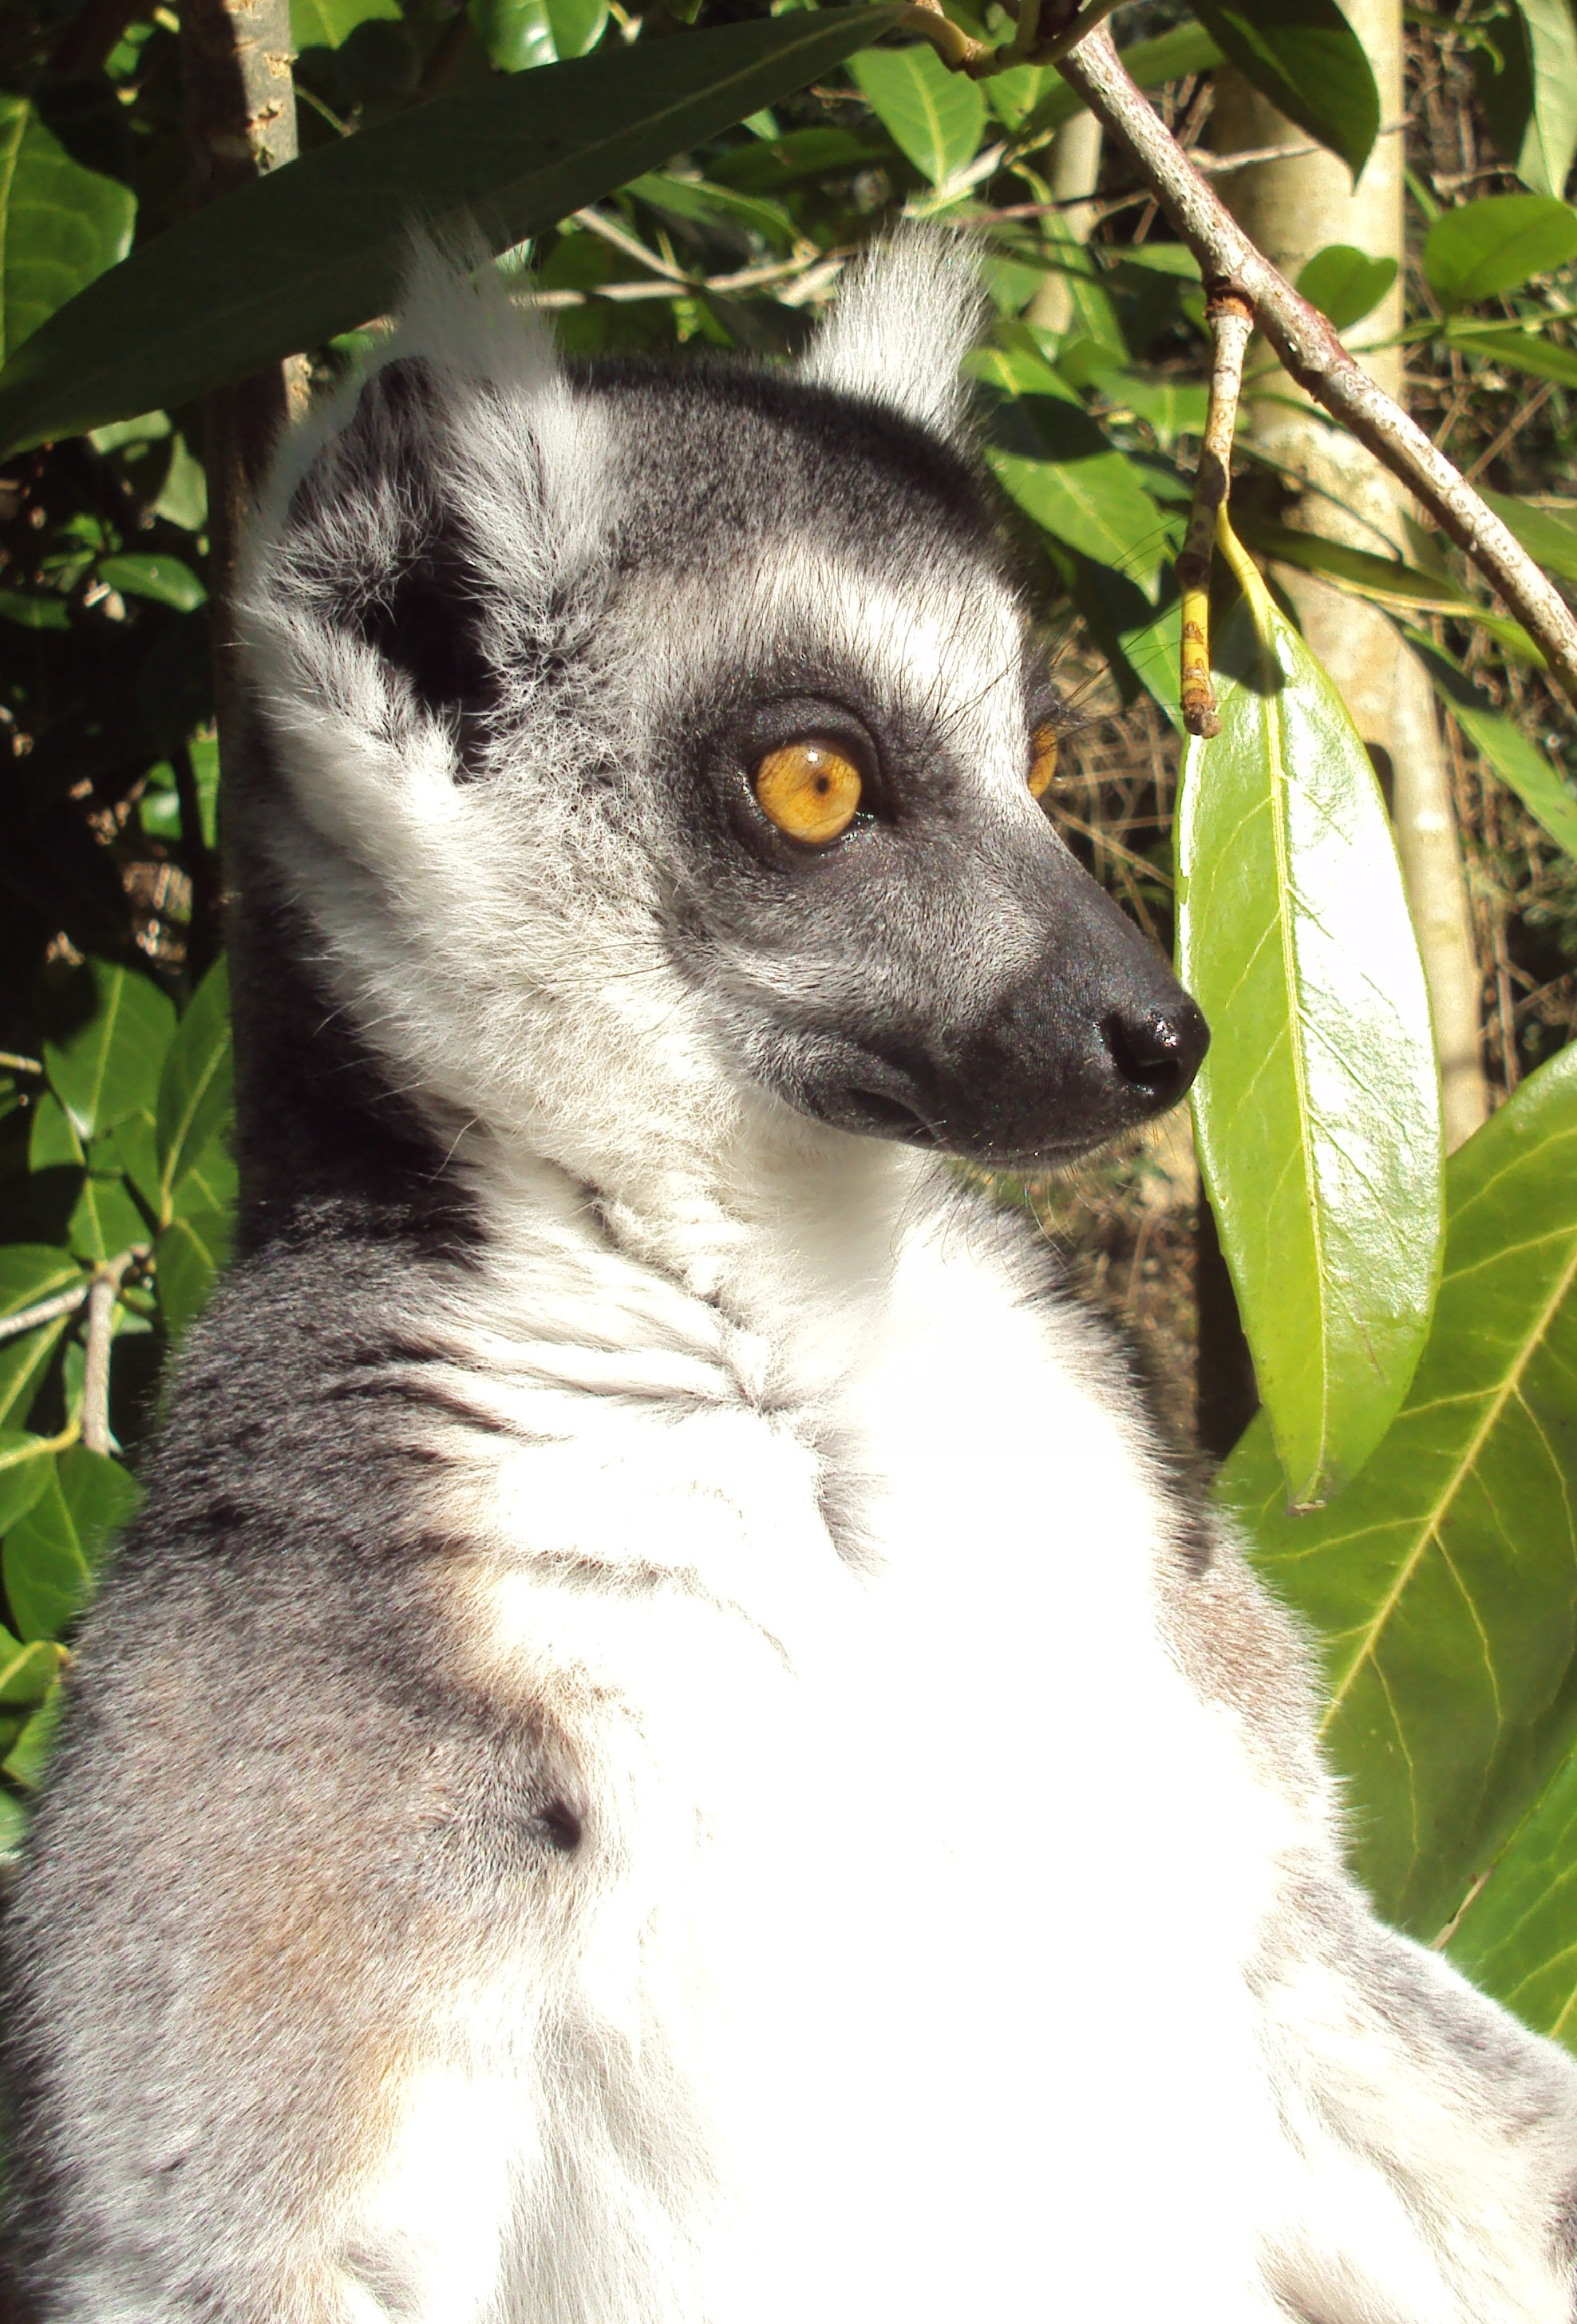 Lemur standing by a tree